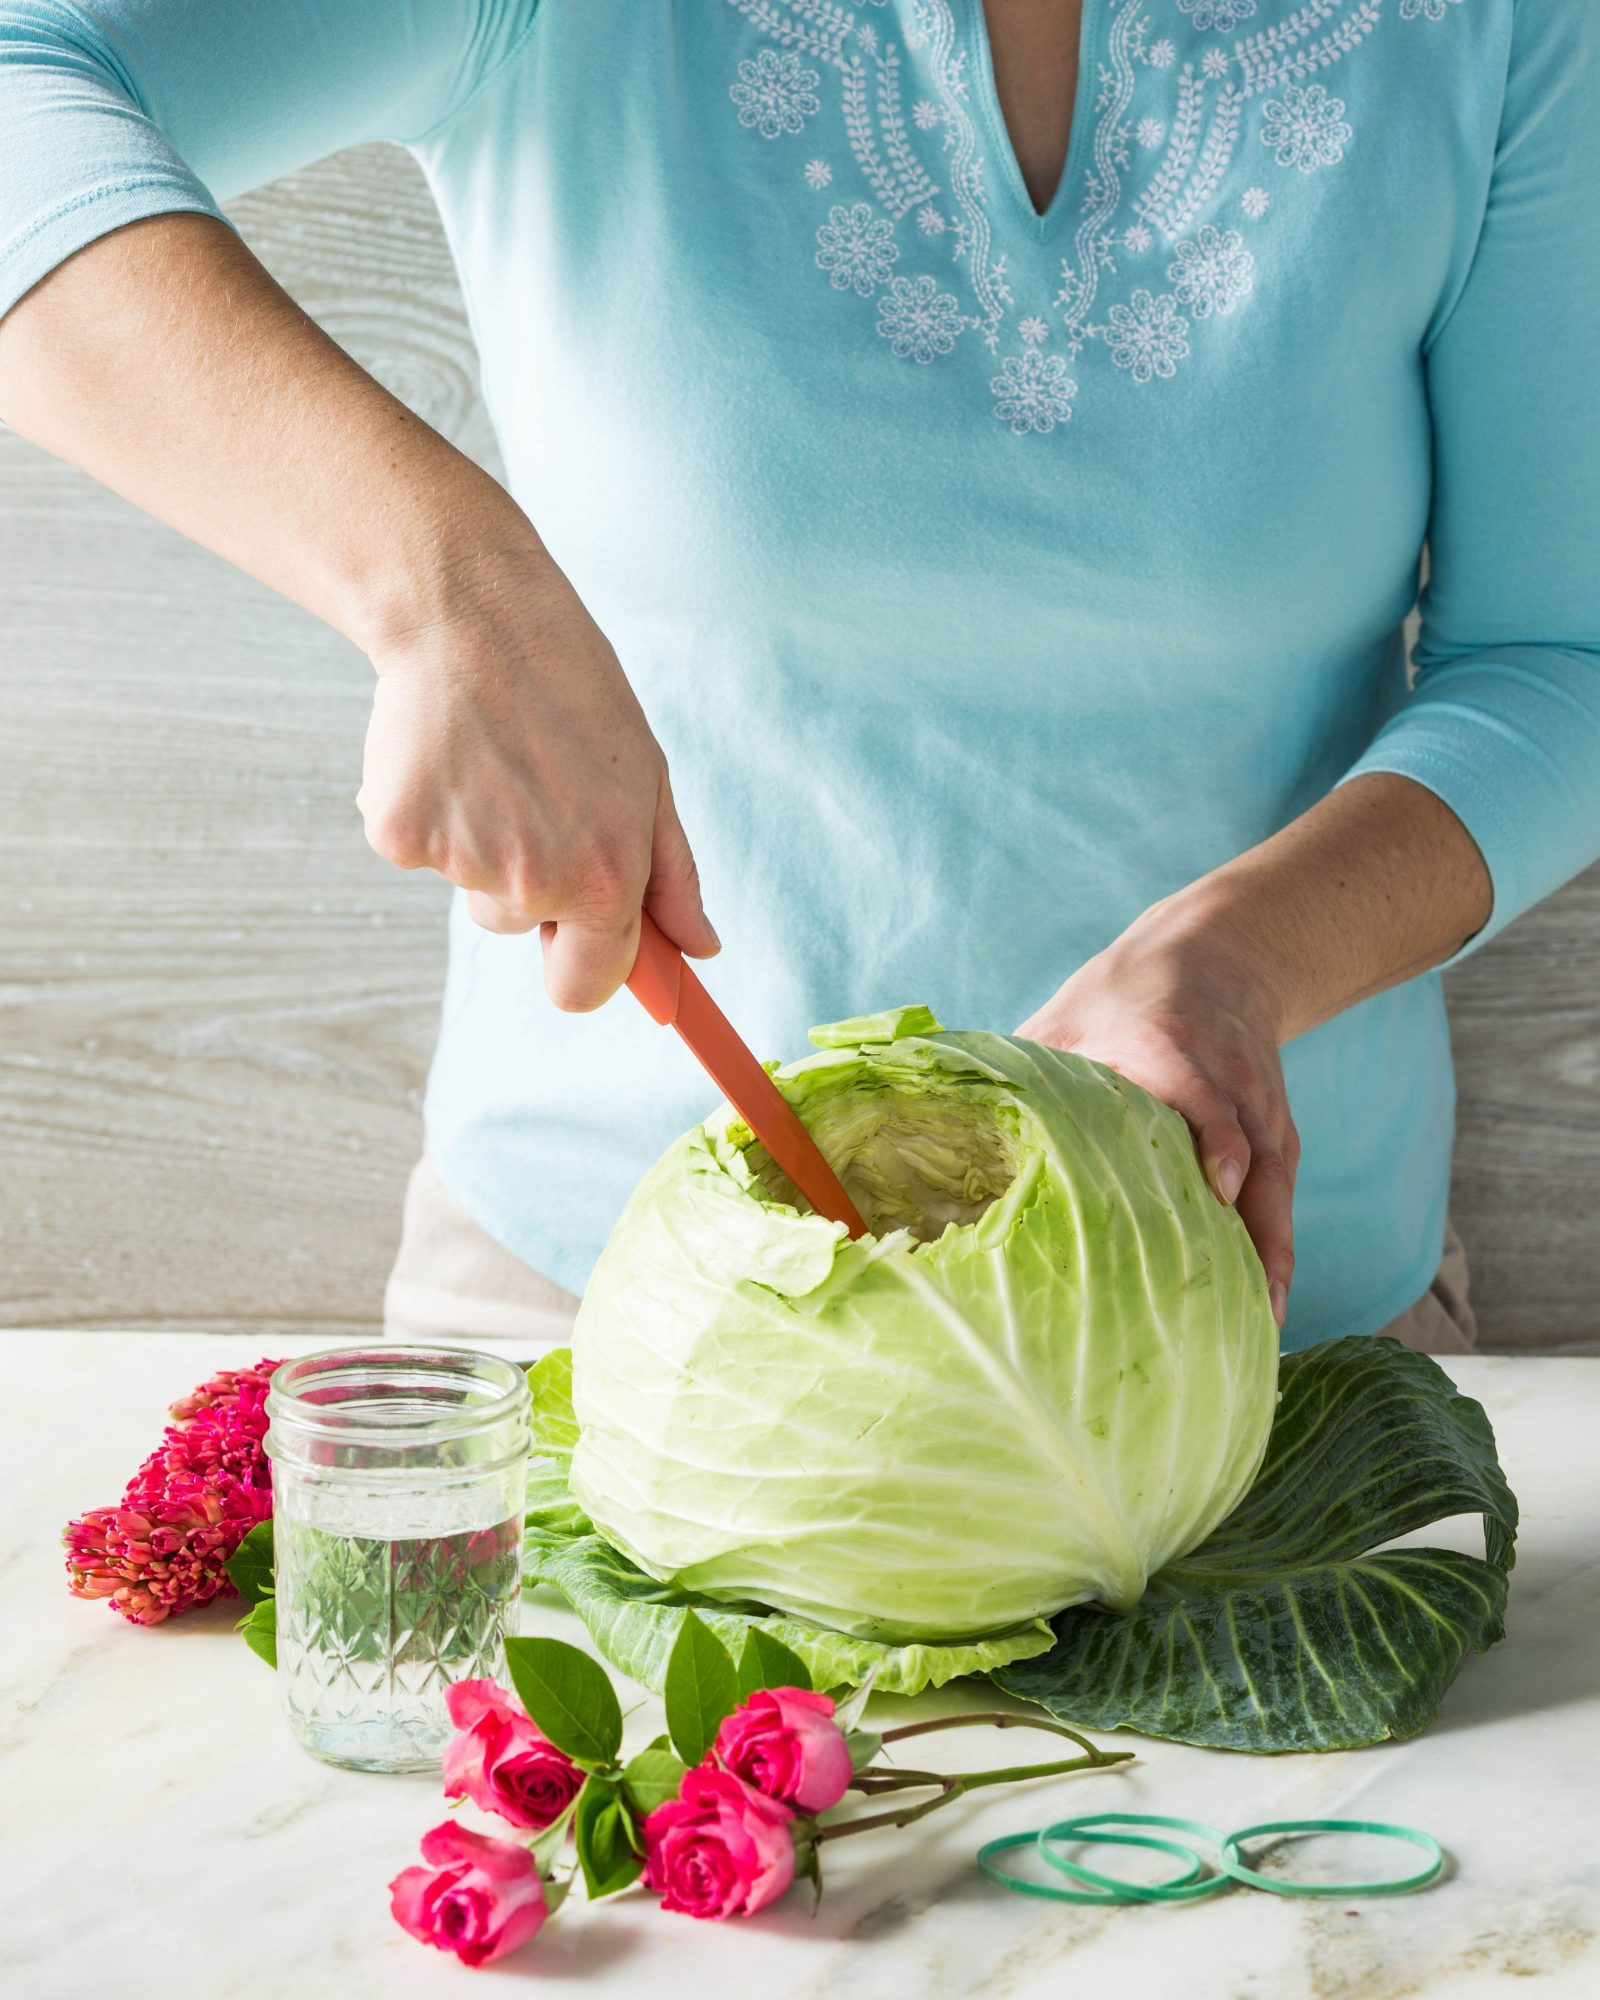 Cabbage Flower Centerpiece Steps 1-5